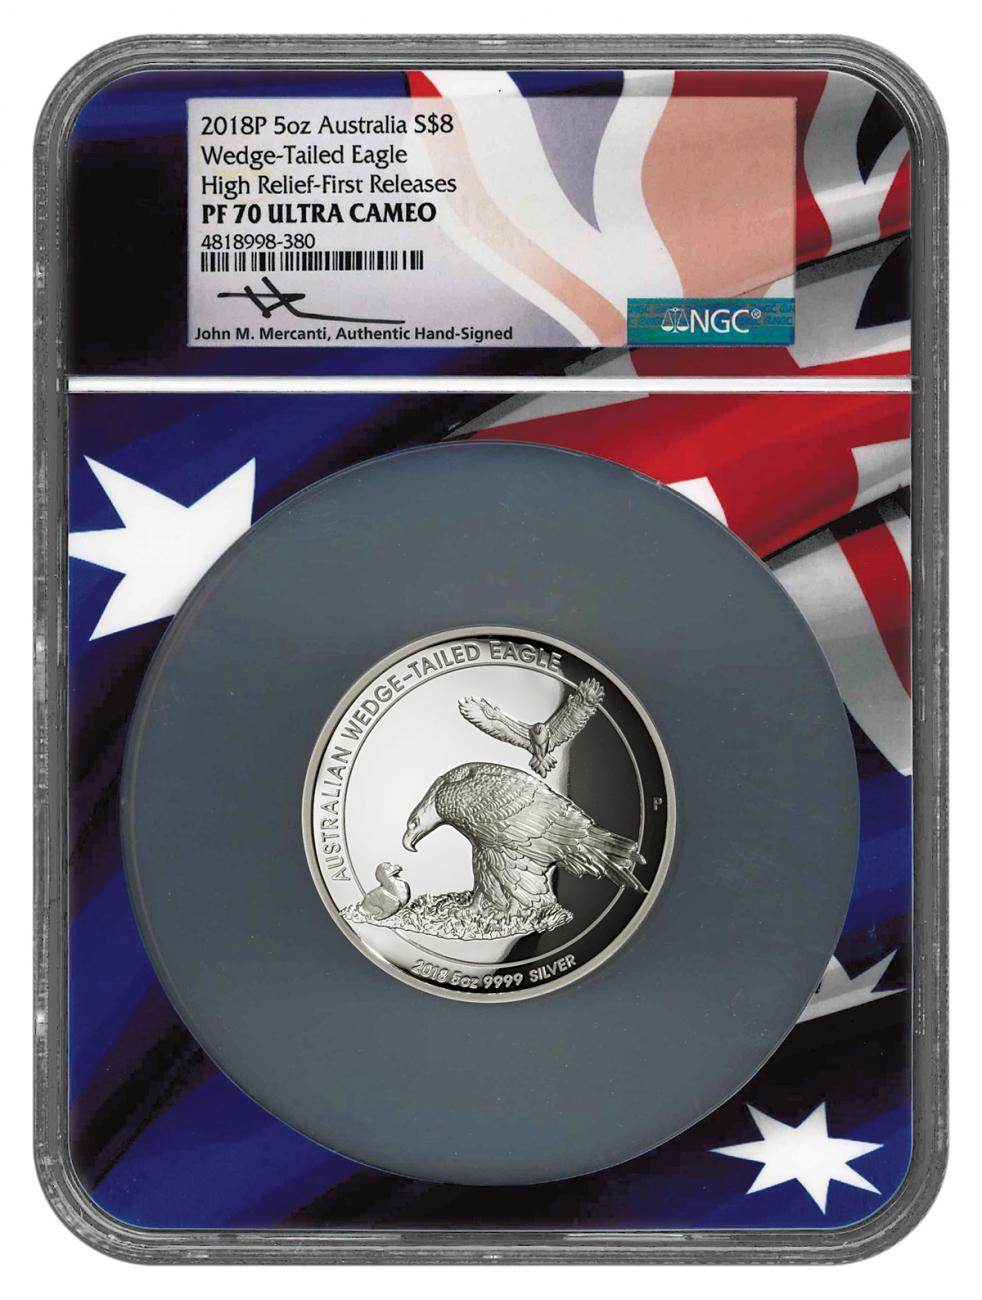 2018-P Australia 5 oz High Relief Silver Wedge-Tailed Eagle Proof $8 Coin NGC PF70 UC FR Flag Core Mercanti Signed Flag Label